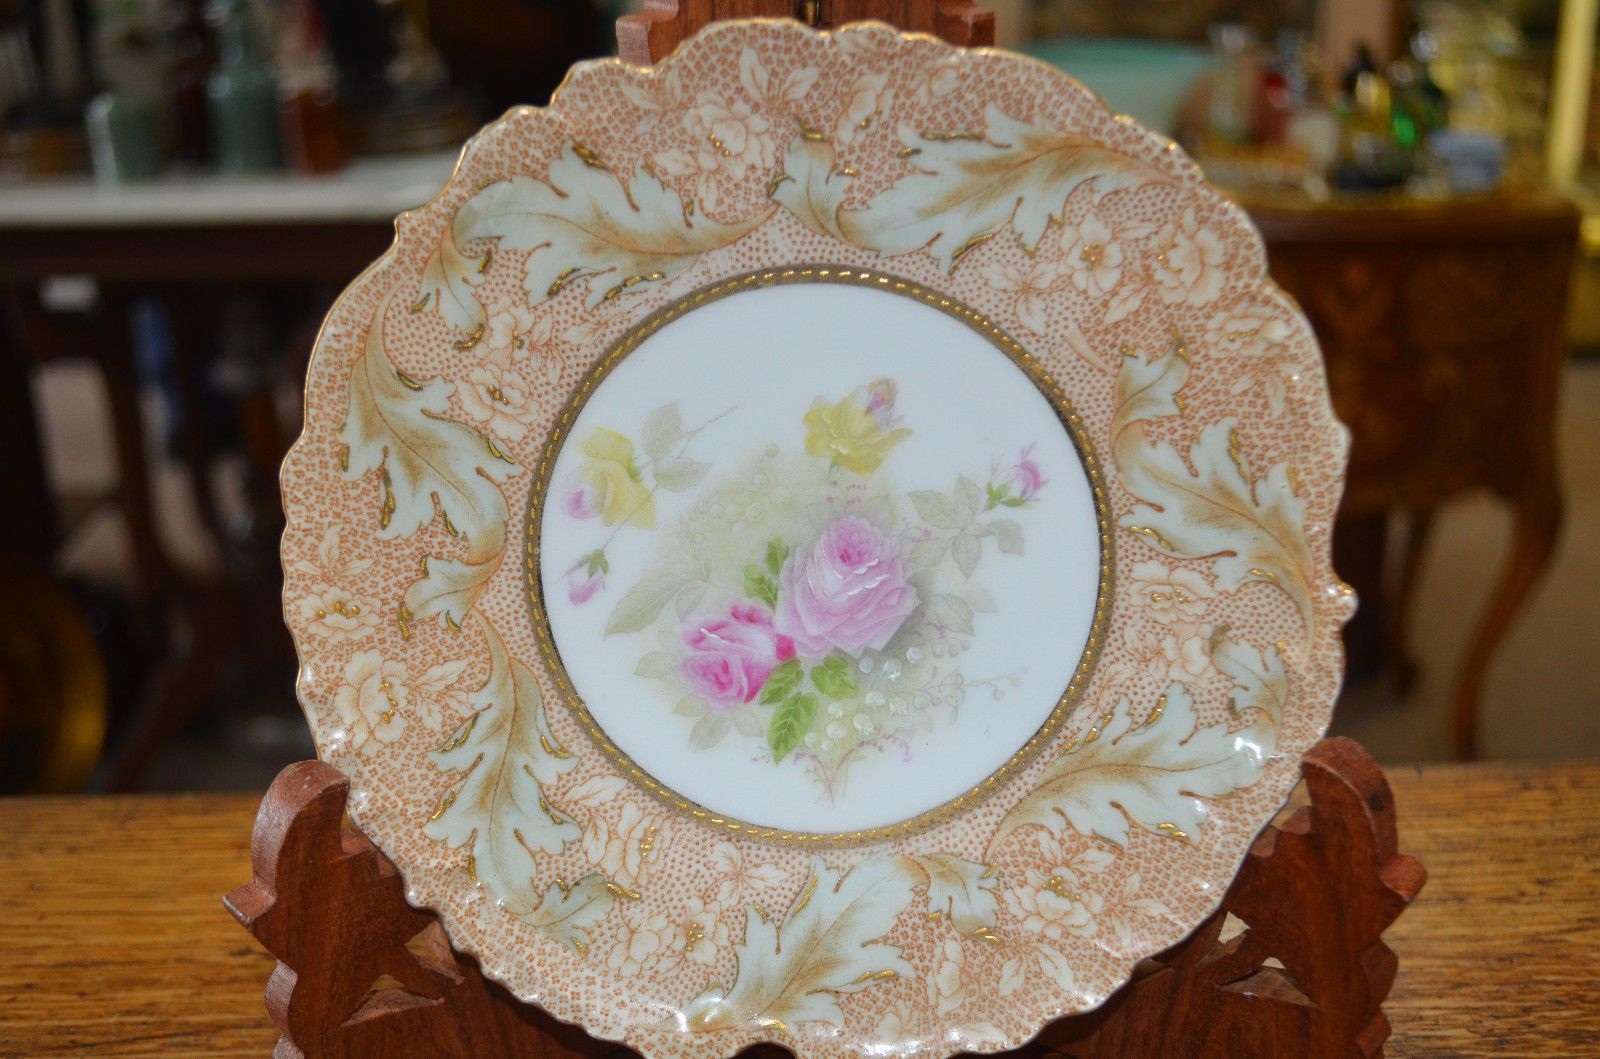 5 Vintage Bavarian China Pink Roses Dessert Plates Germany Signed Hand Painted | eBay